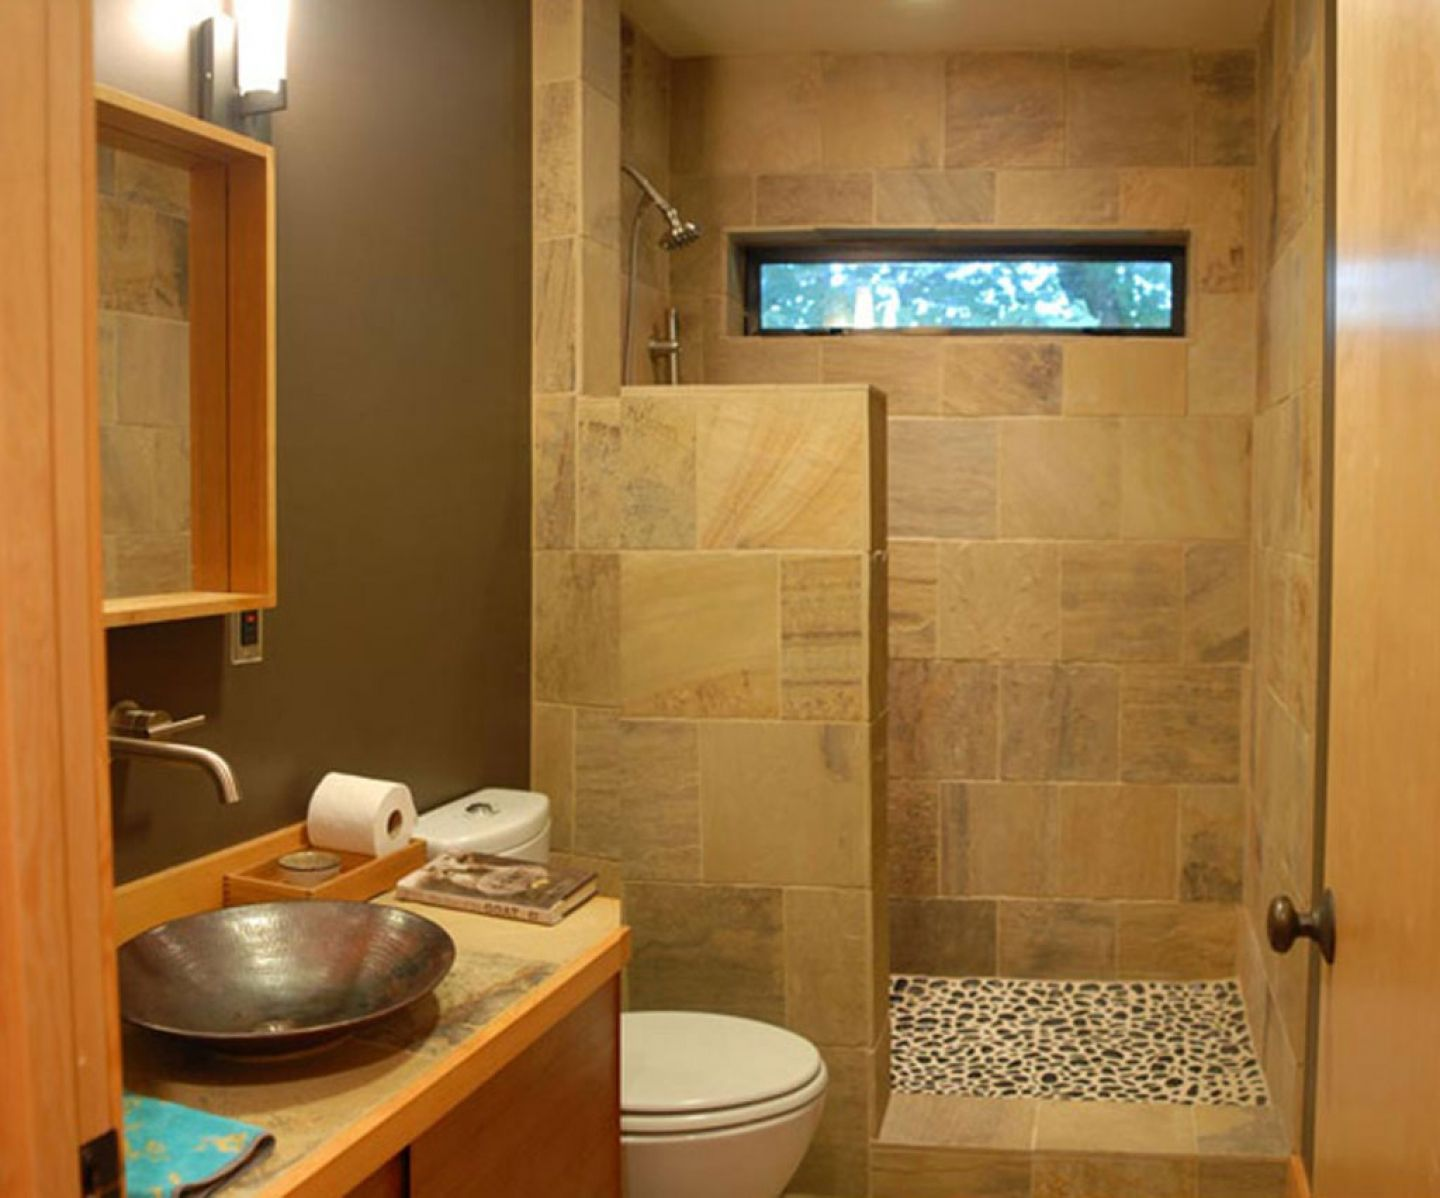 Small Bathroom Remodel Ideas splendid bathroom design ideas philippines small bathroom design 30 Best Small Bathroom Ideas